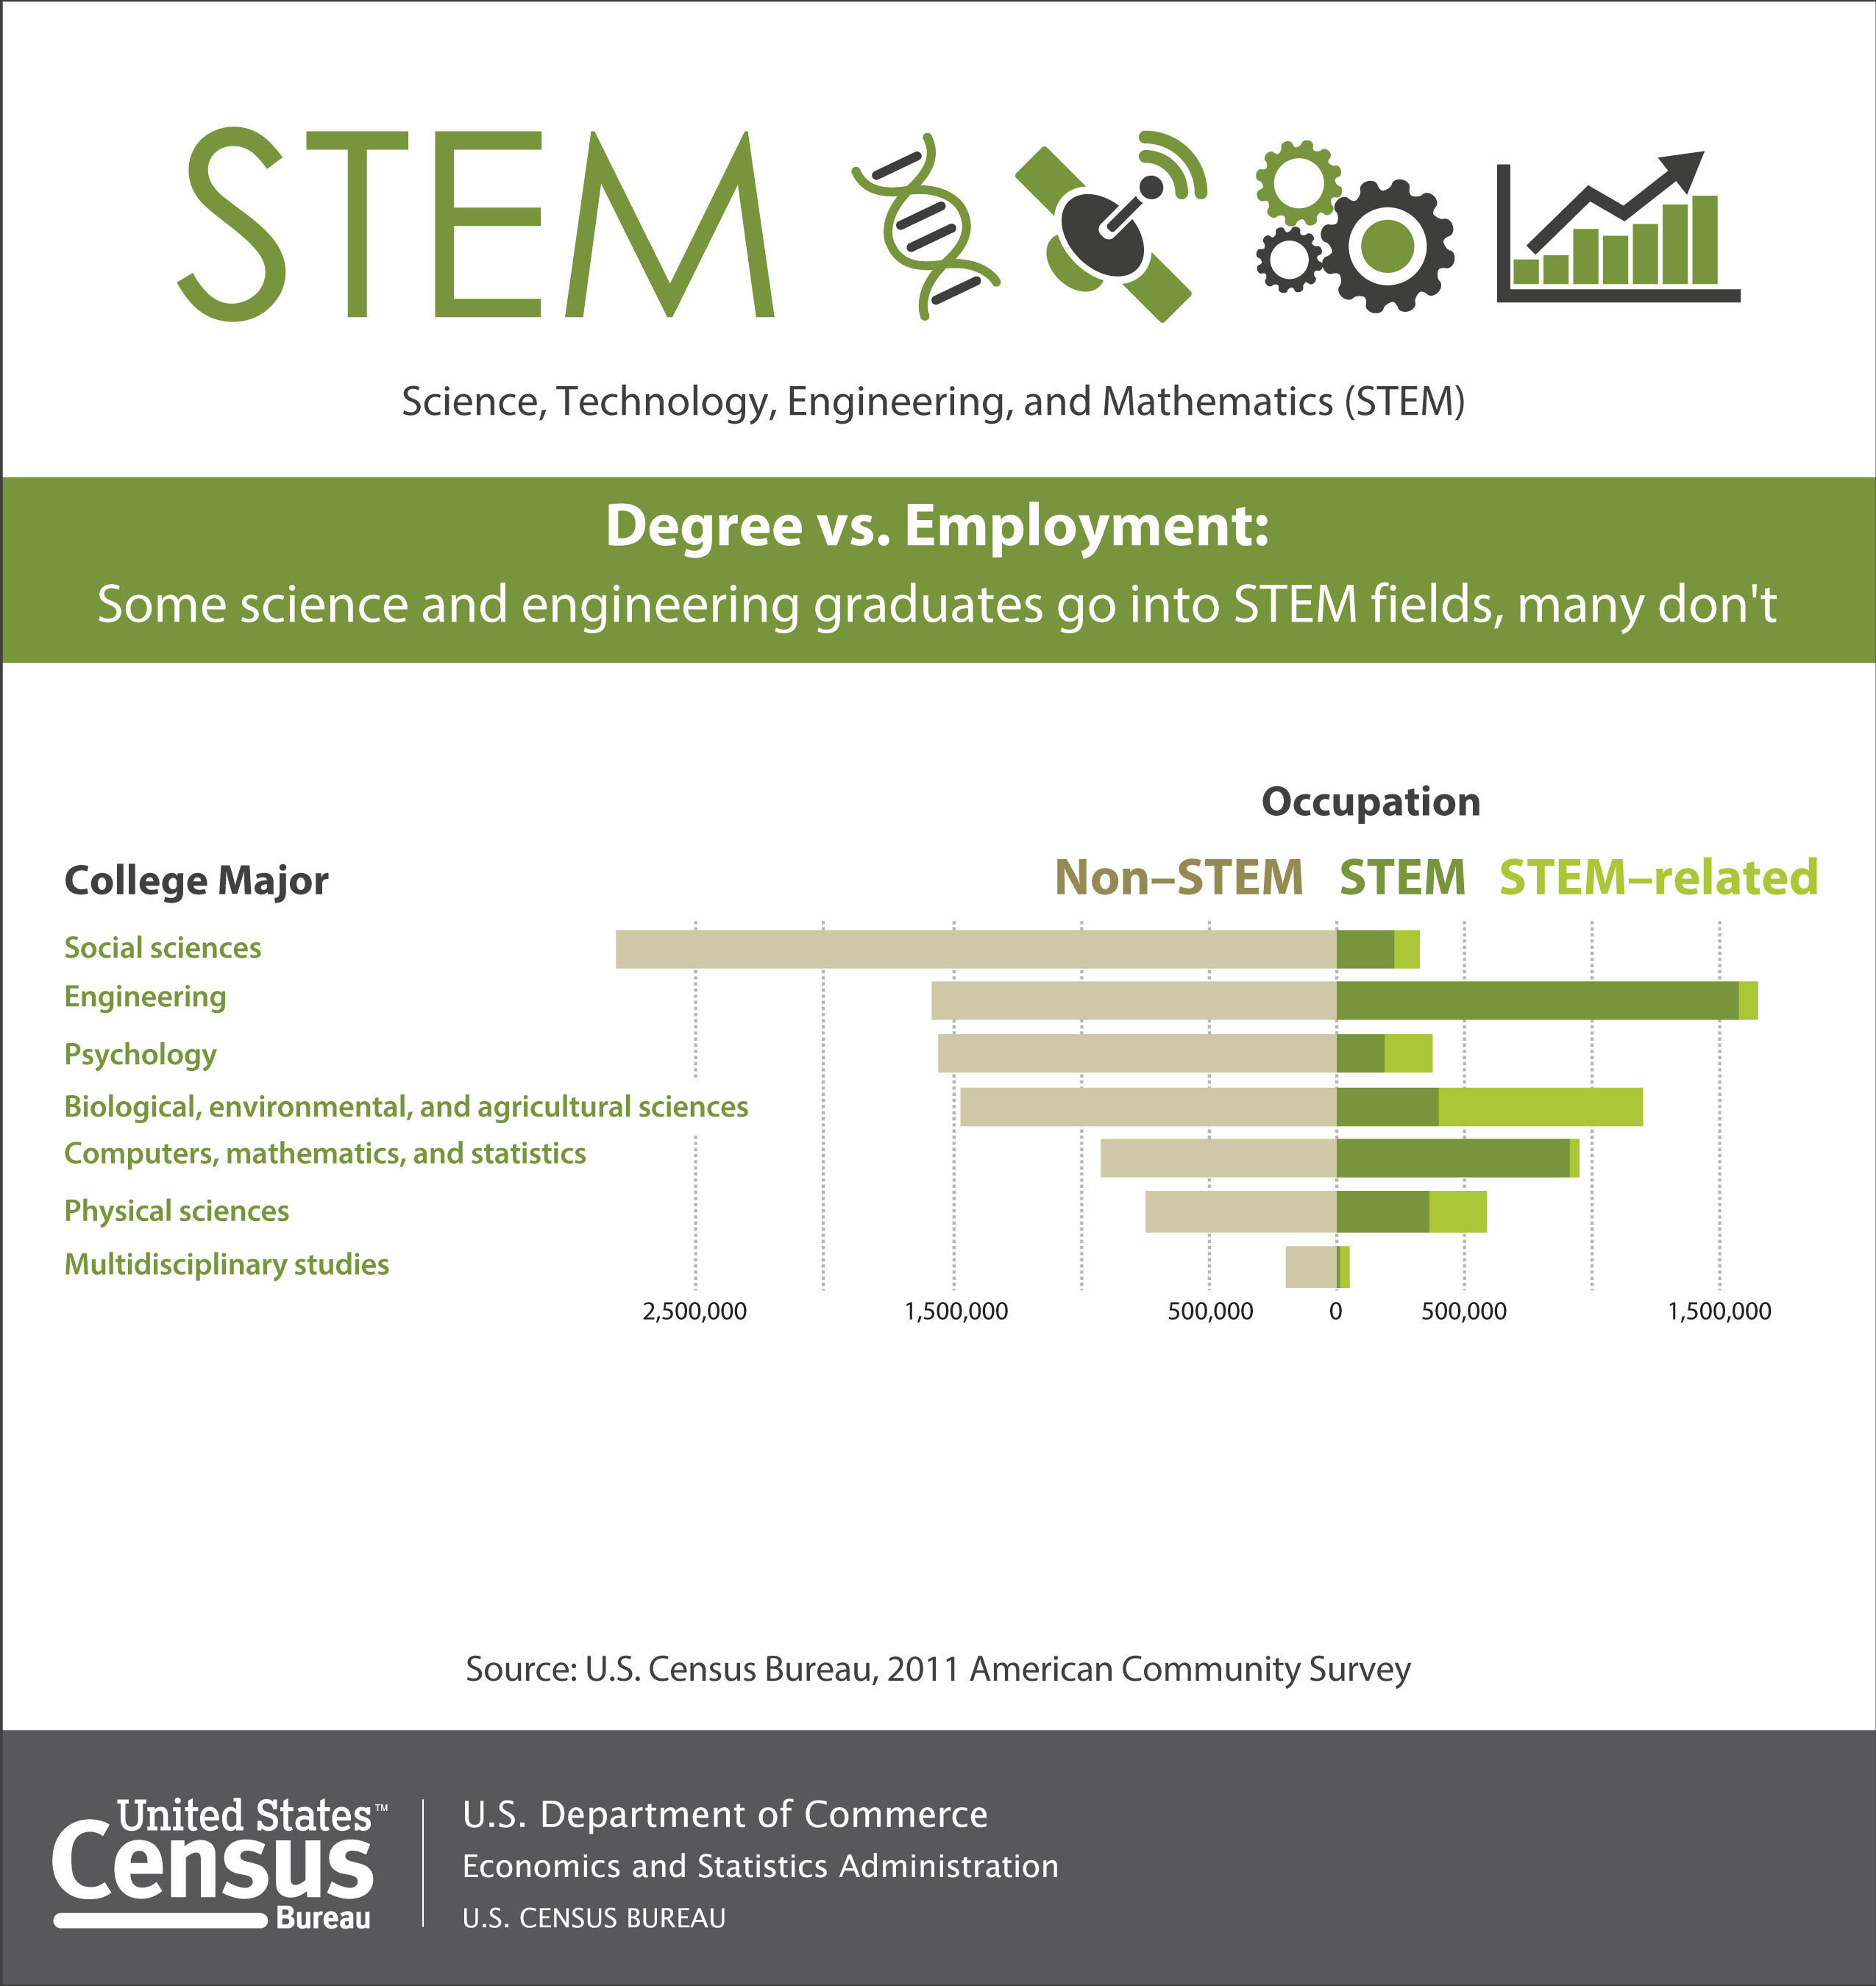 Three in four science and engineering graduates were not working in STEM occupations in 2011, according to a U.S. Census Bureau report released today. Instead, they were working in fields such as non-STEM management, law, education and accounting, and STEM-related occupations, such as health care. More: http://www.census.gov/newsroom/releases/archives/employment_occupations/cb13-162.html   (PRNewsFoto/U.S. Census Bureau)